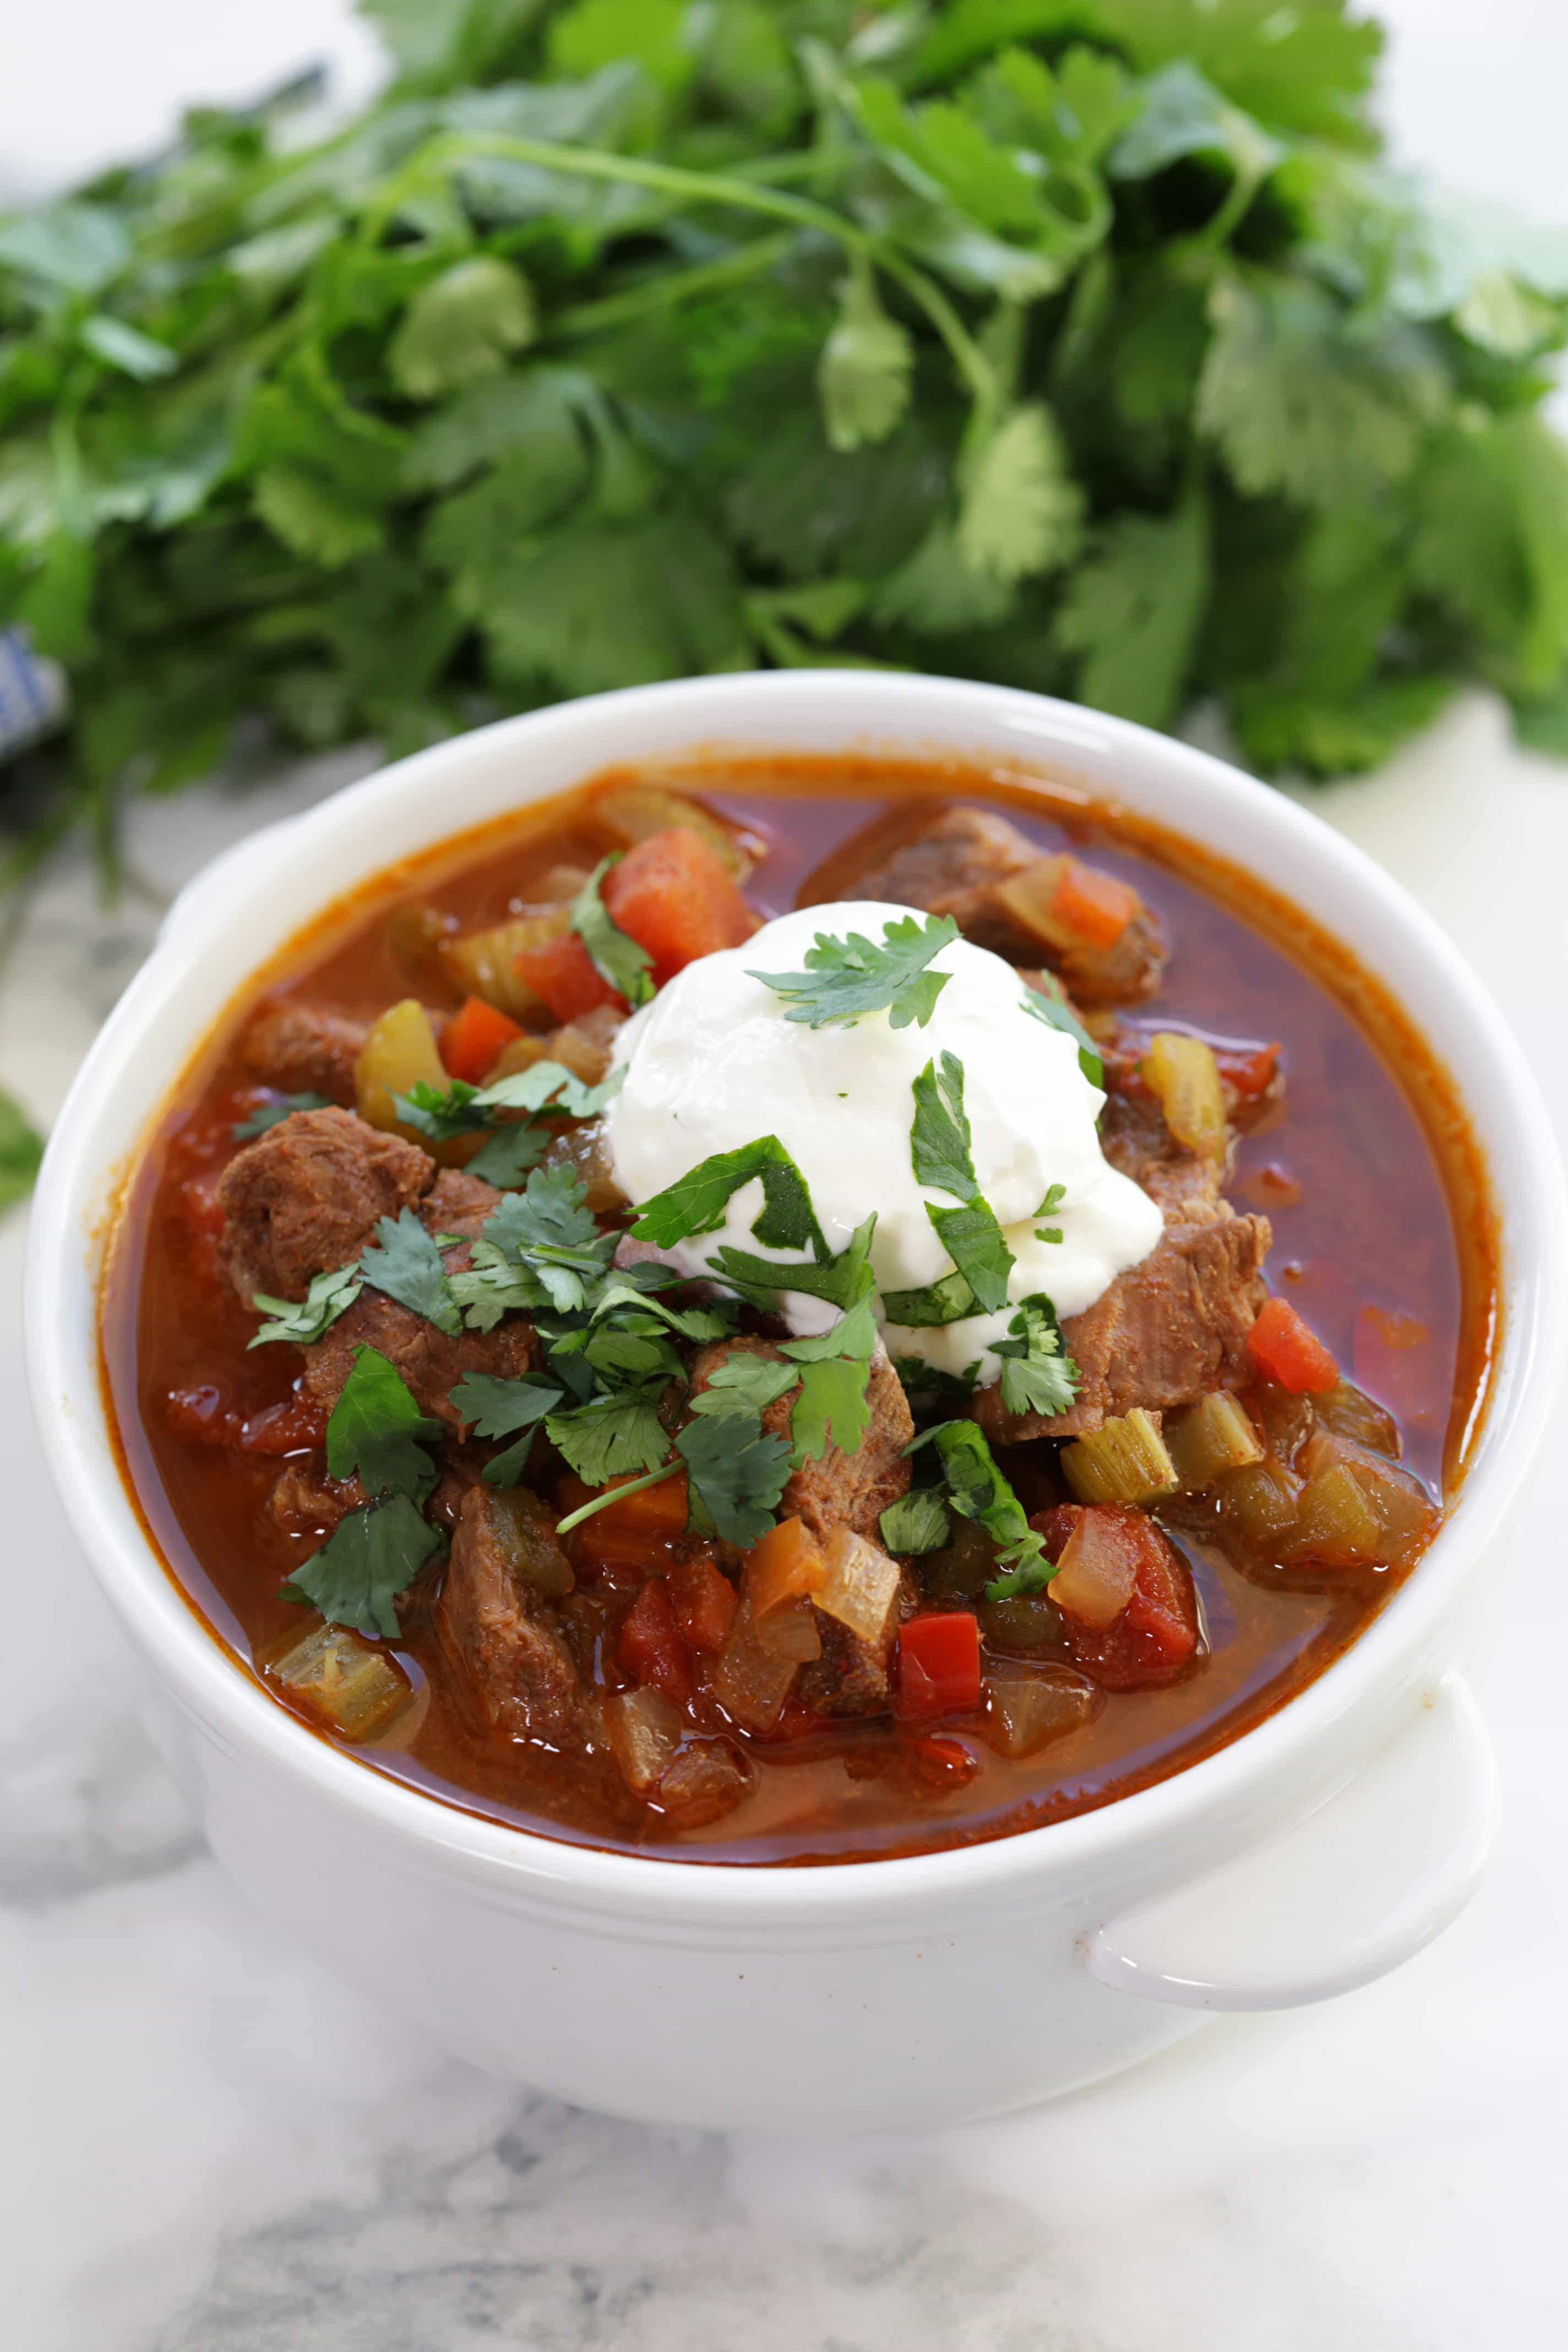 Slow Cooker Texas Beef Chili served in a bowl with a dollop of sour cream and garnished with fresh cilantro.